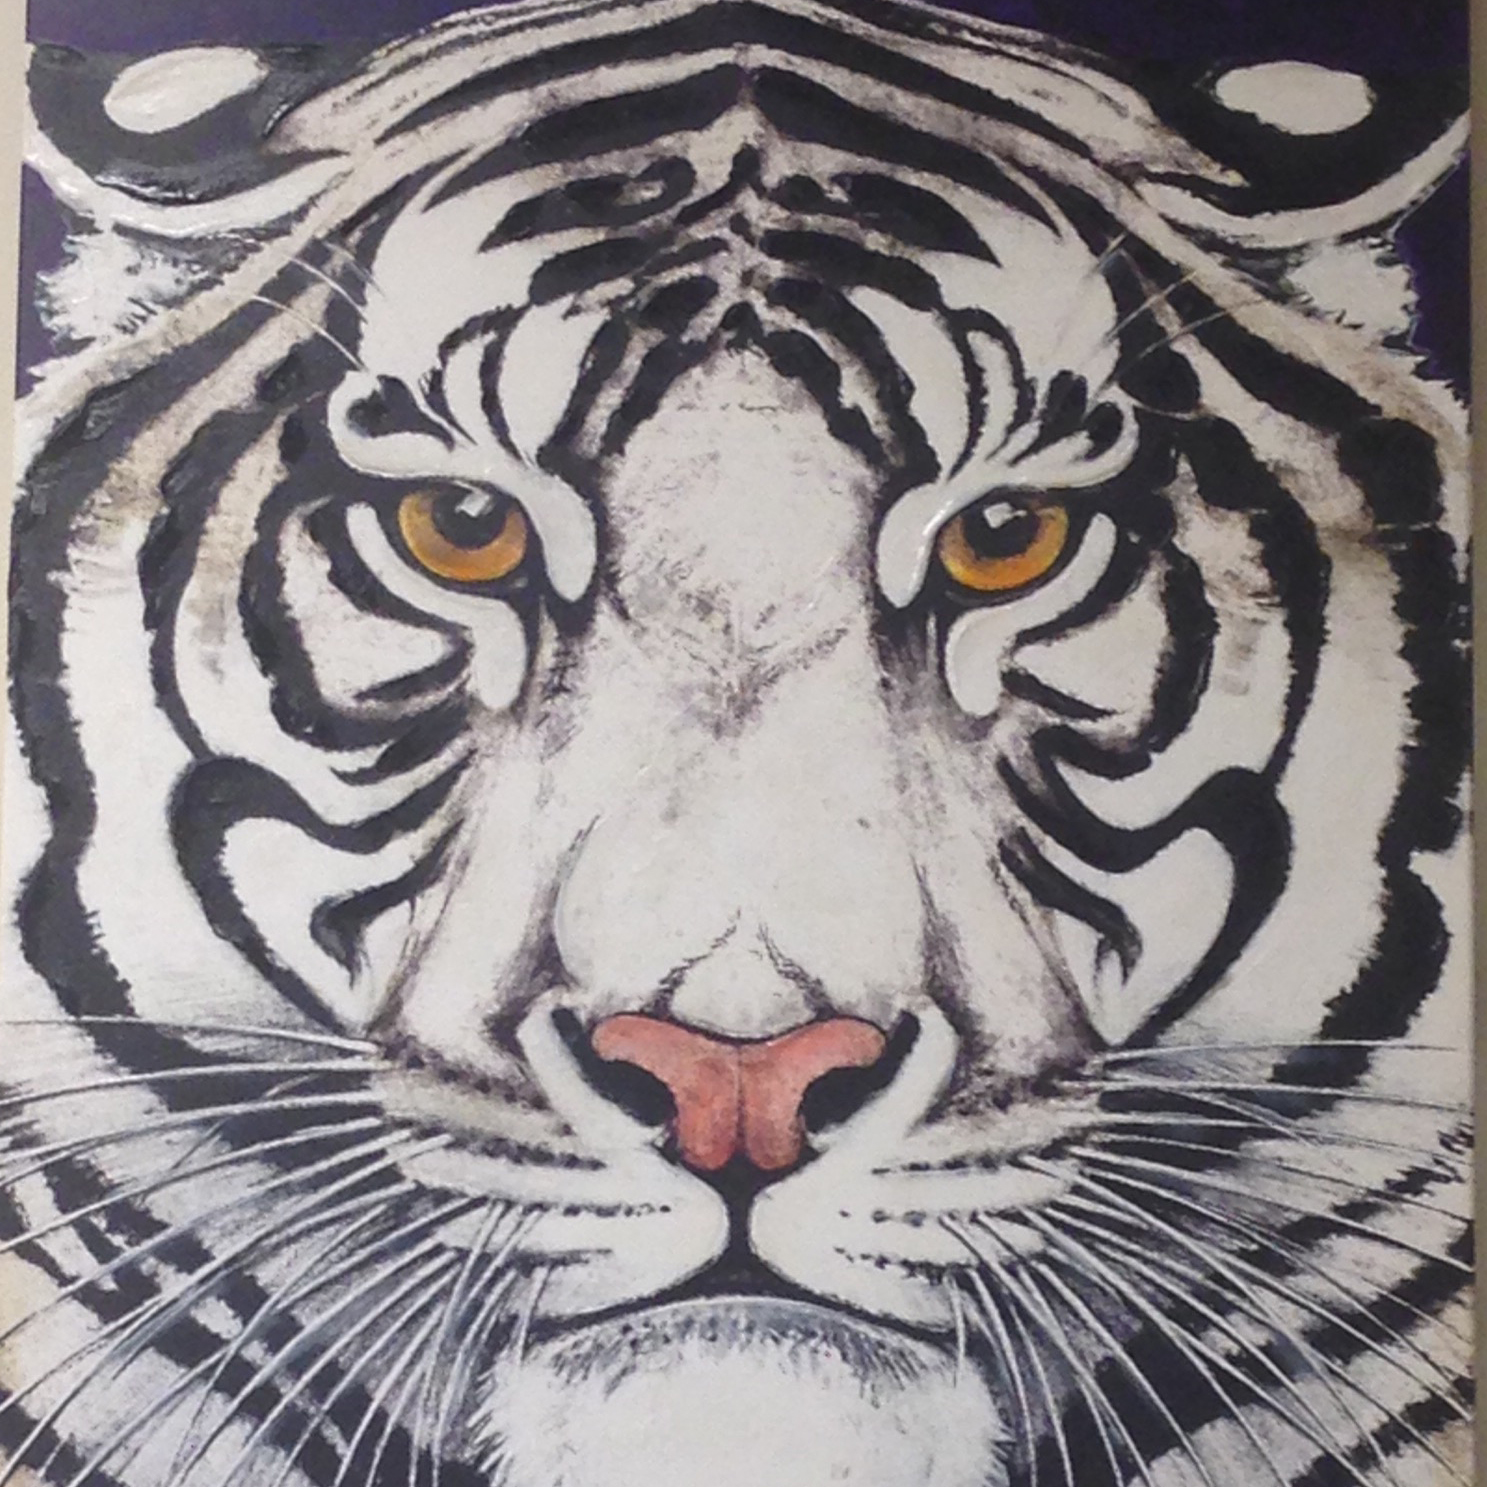 Image of Tiger mascot face